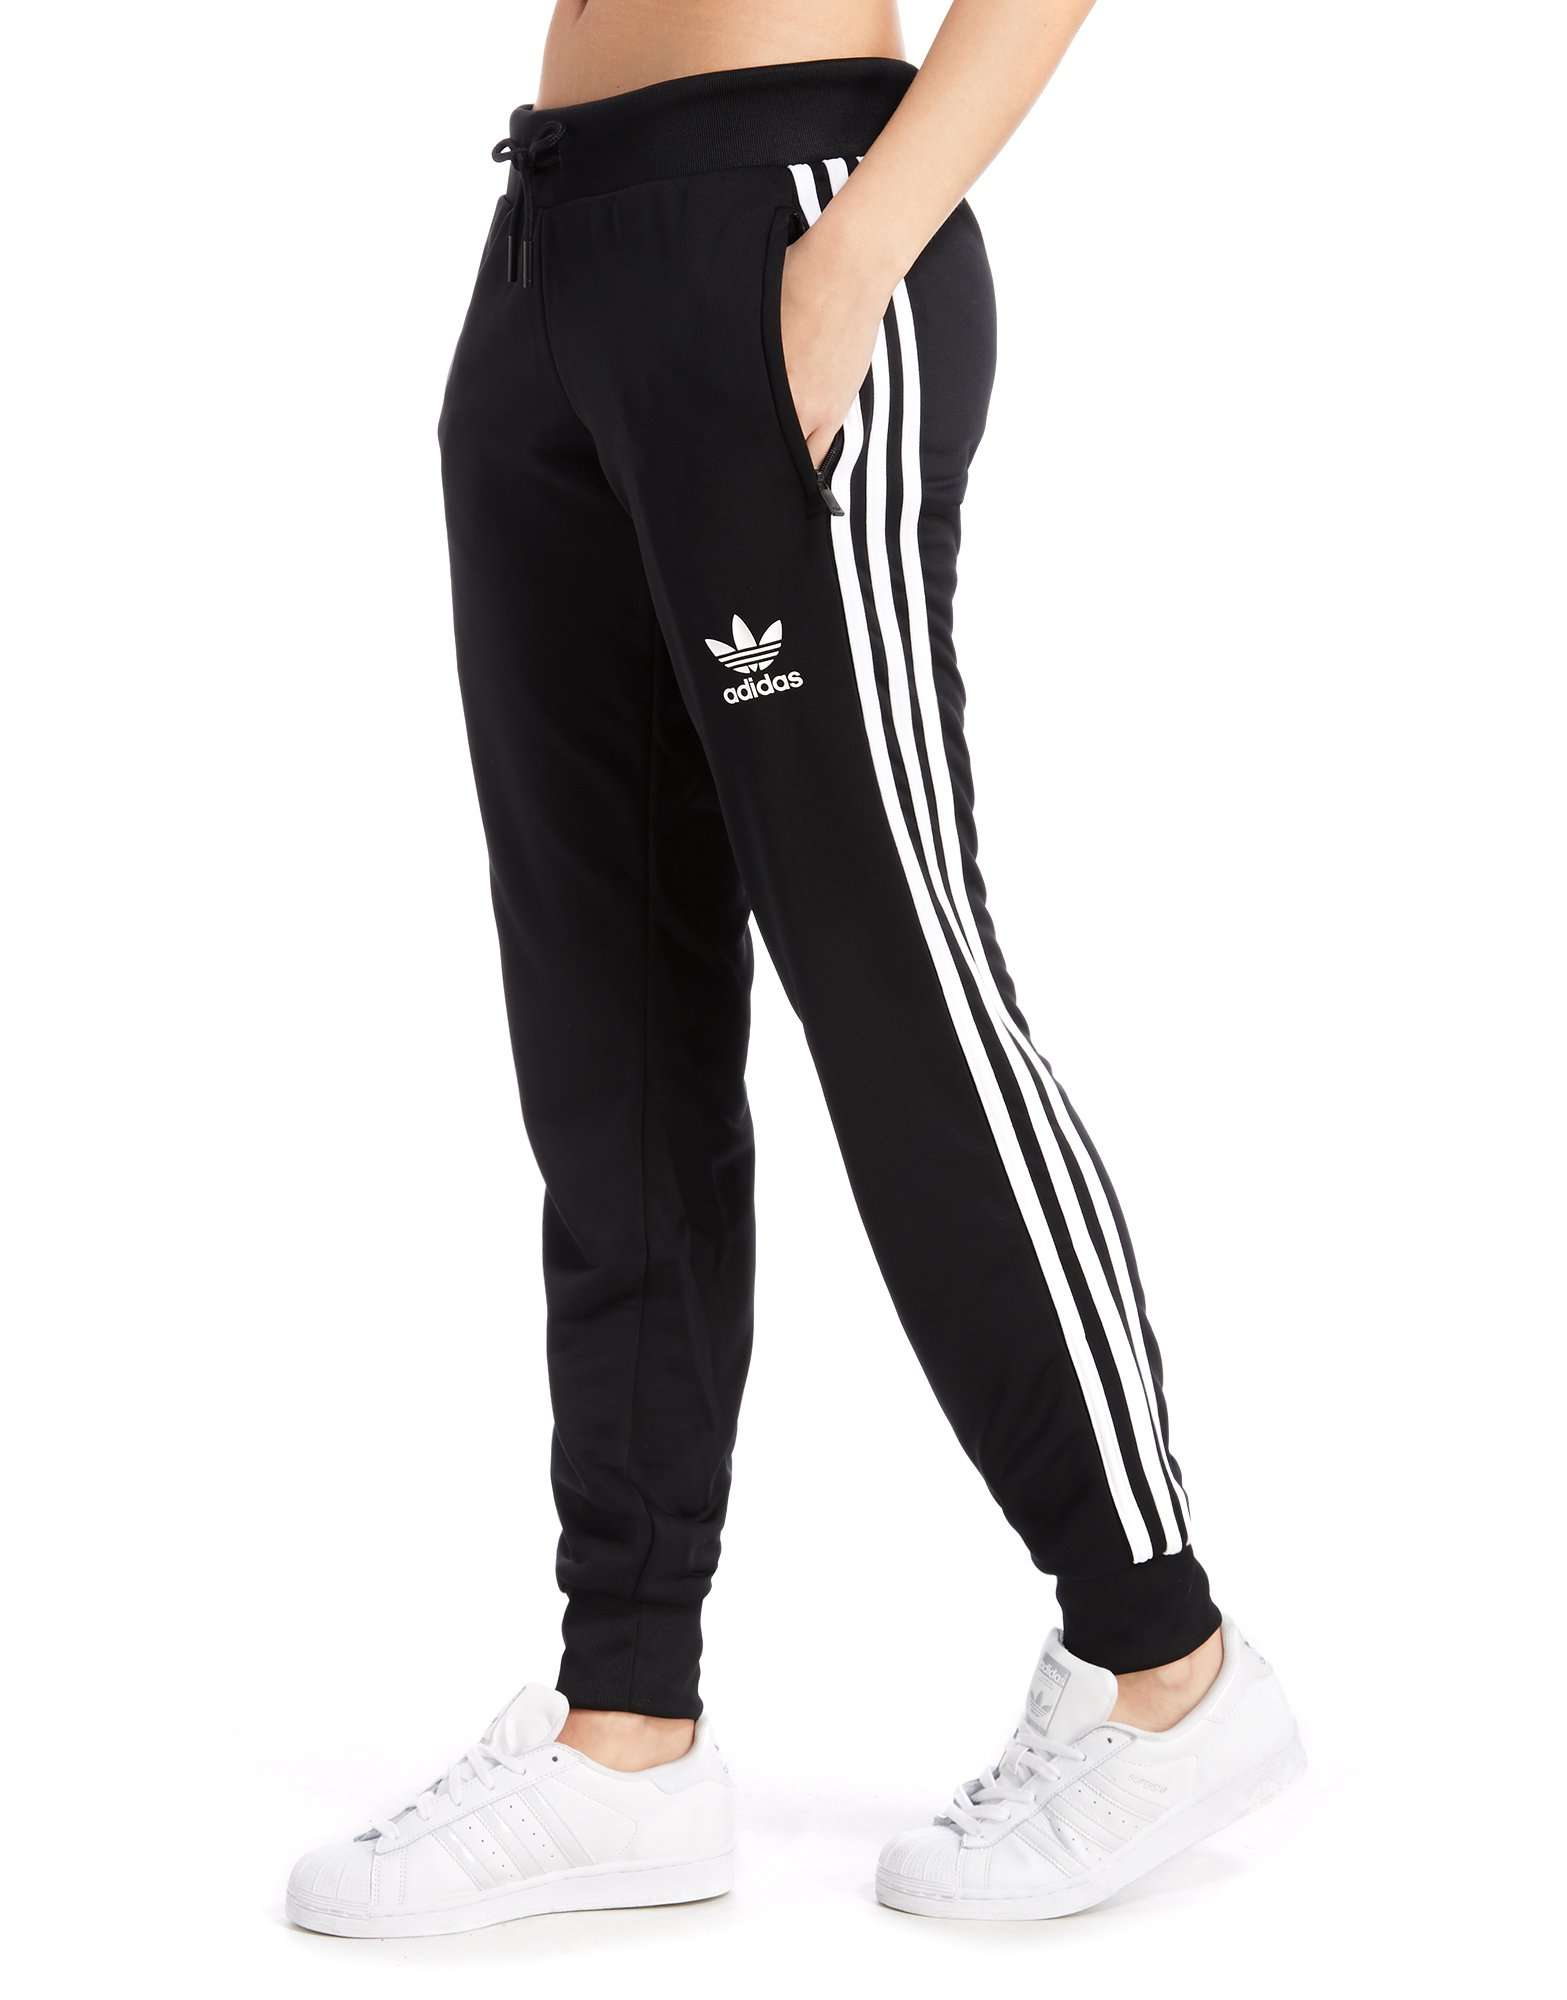 Fantastic Nike Womens Rally Tight Joggers